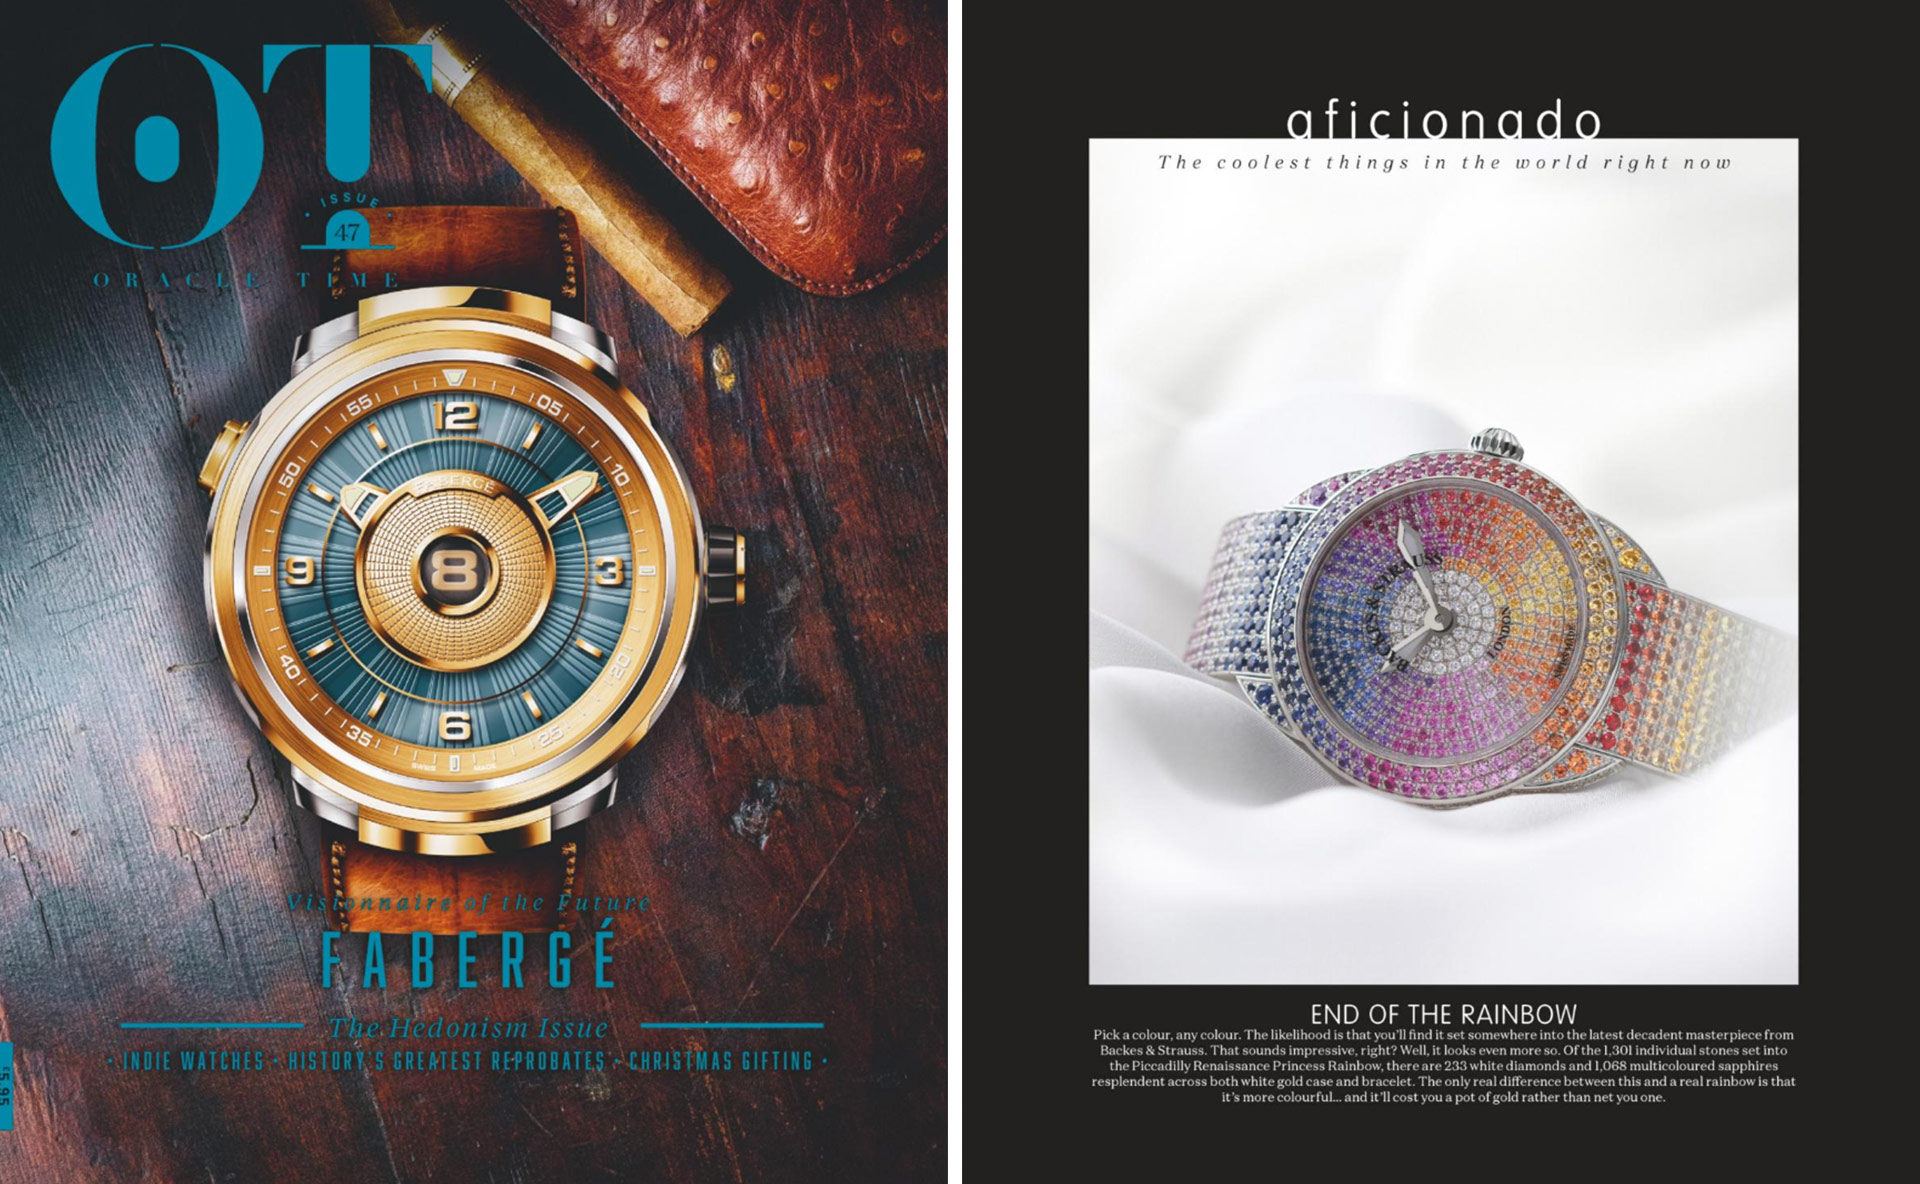 Piccadilly Renaissance Ballerina diamond watch featured in Oracle Times